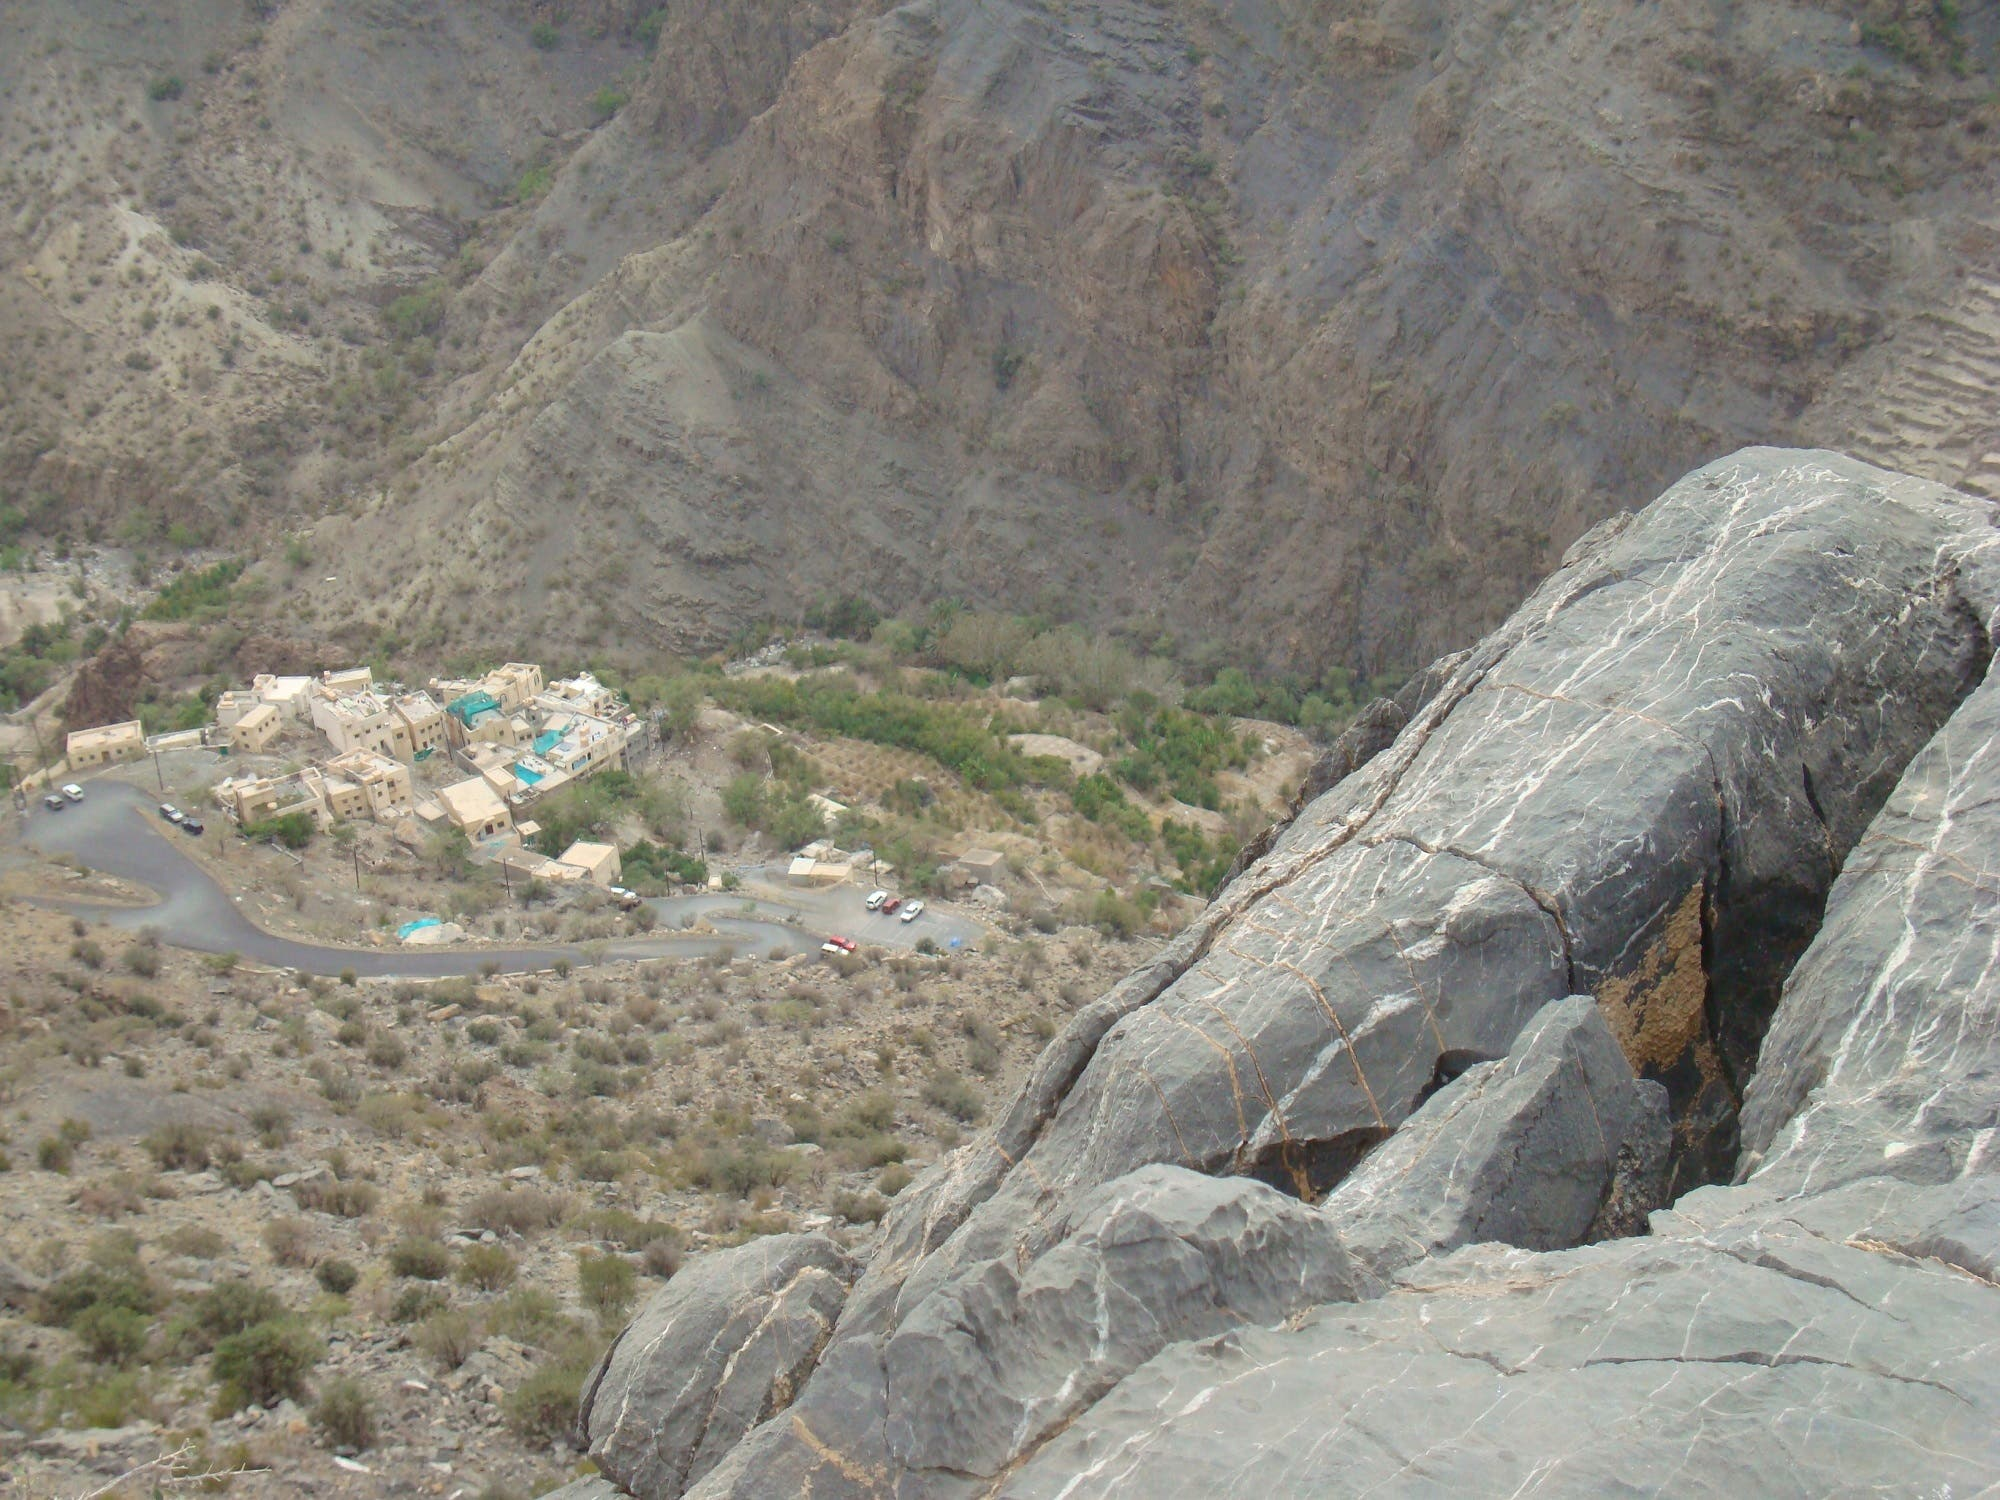 Key attractions in Jabal al-Akhdar are the alluring sights of water cascading down the rocky mountains. (Supplied)